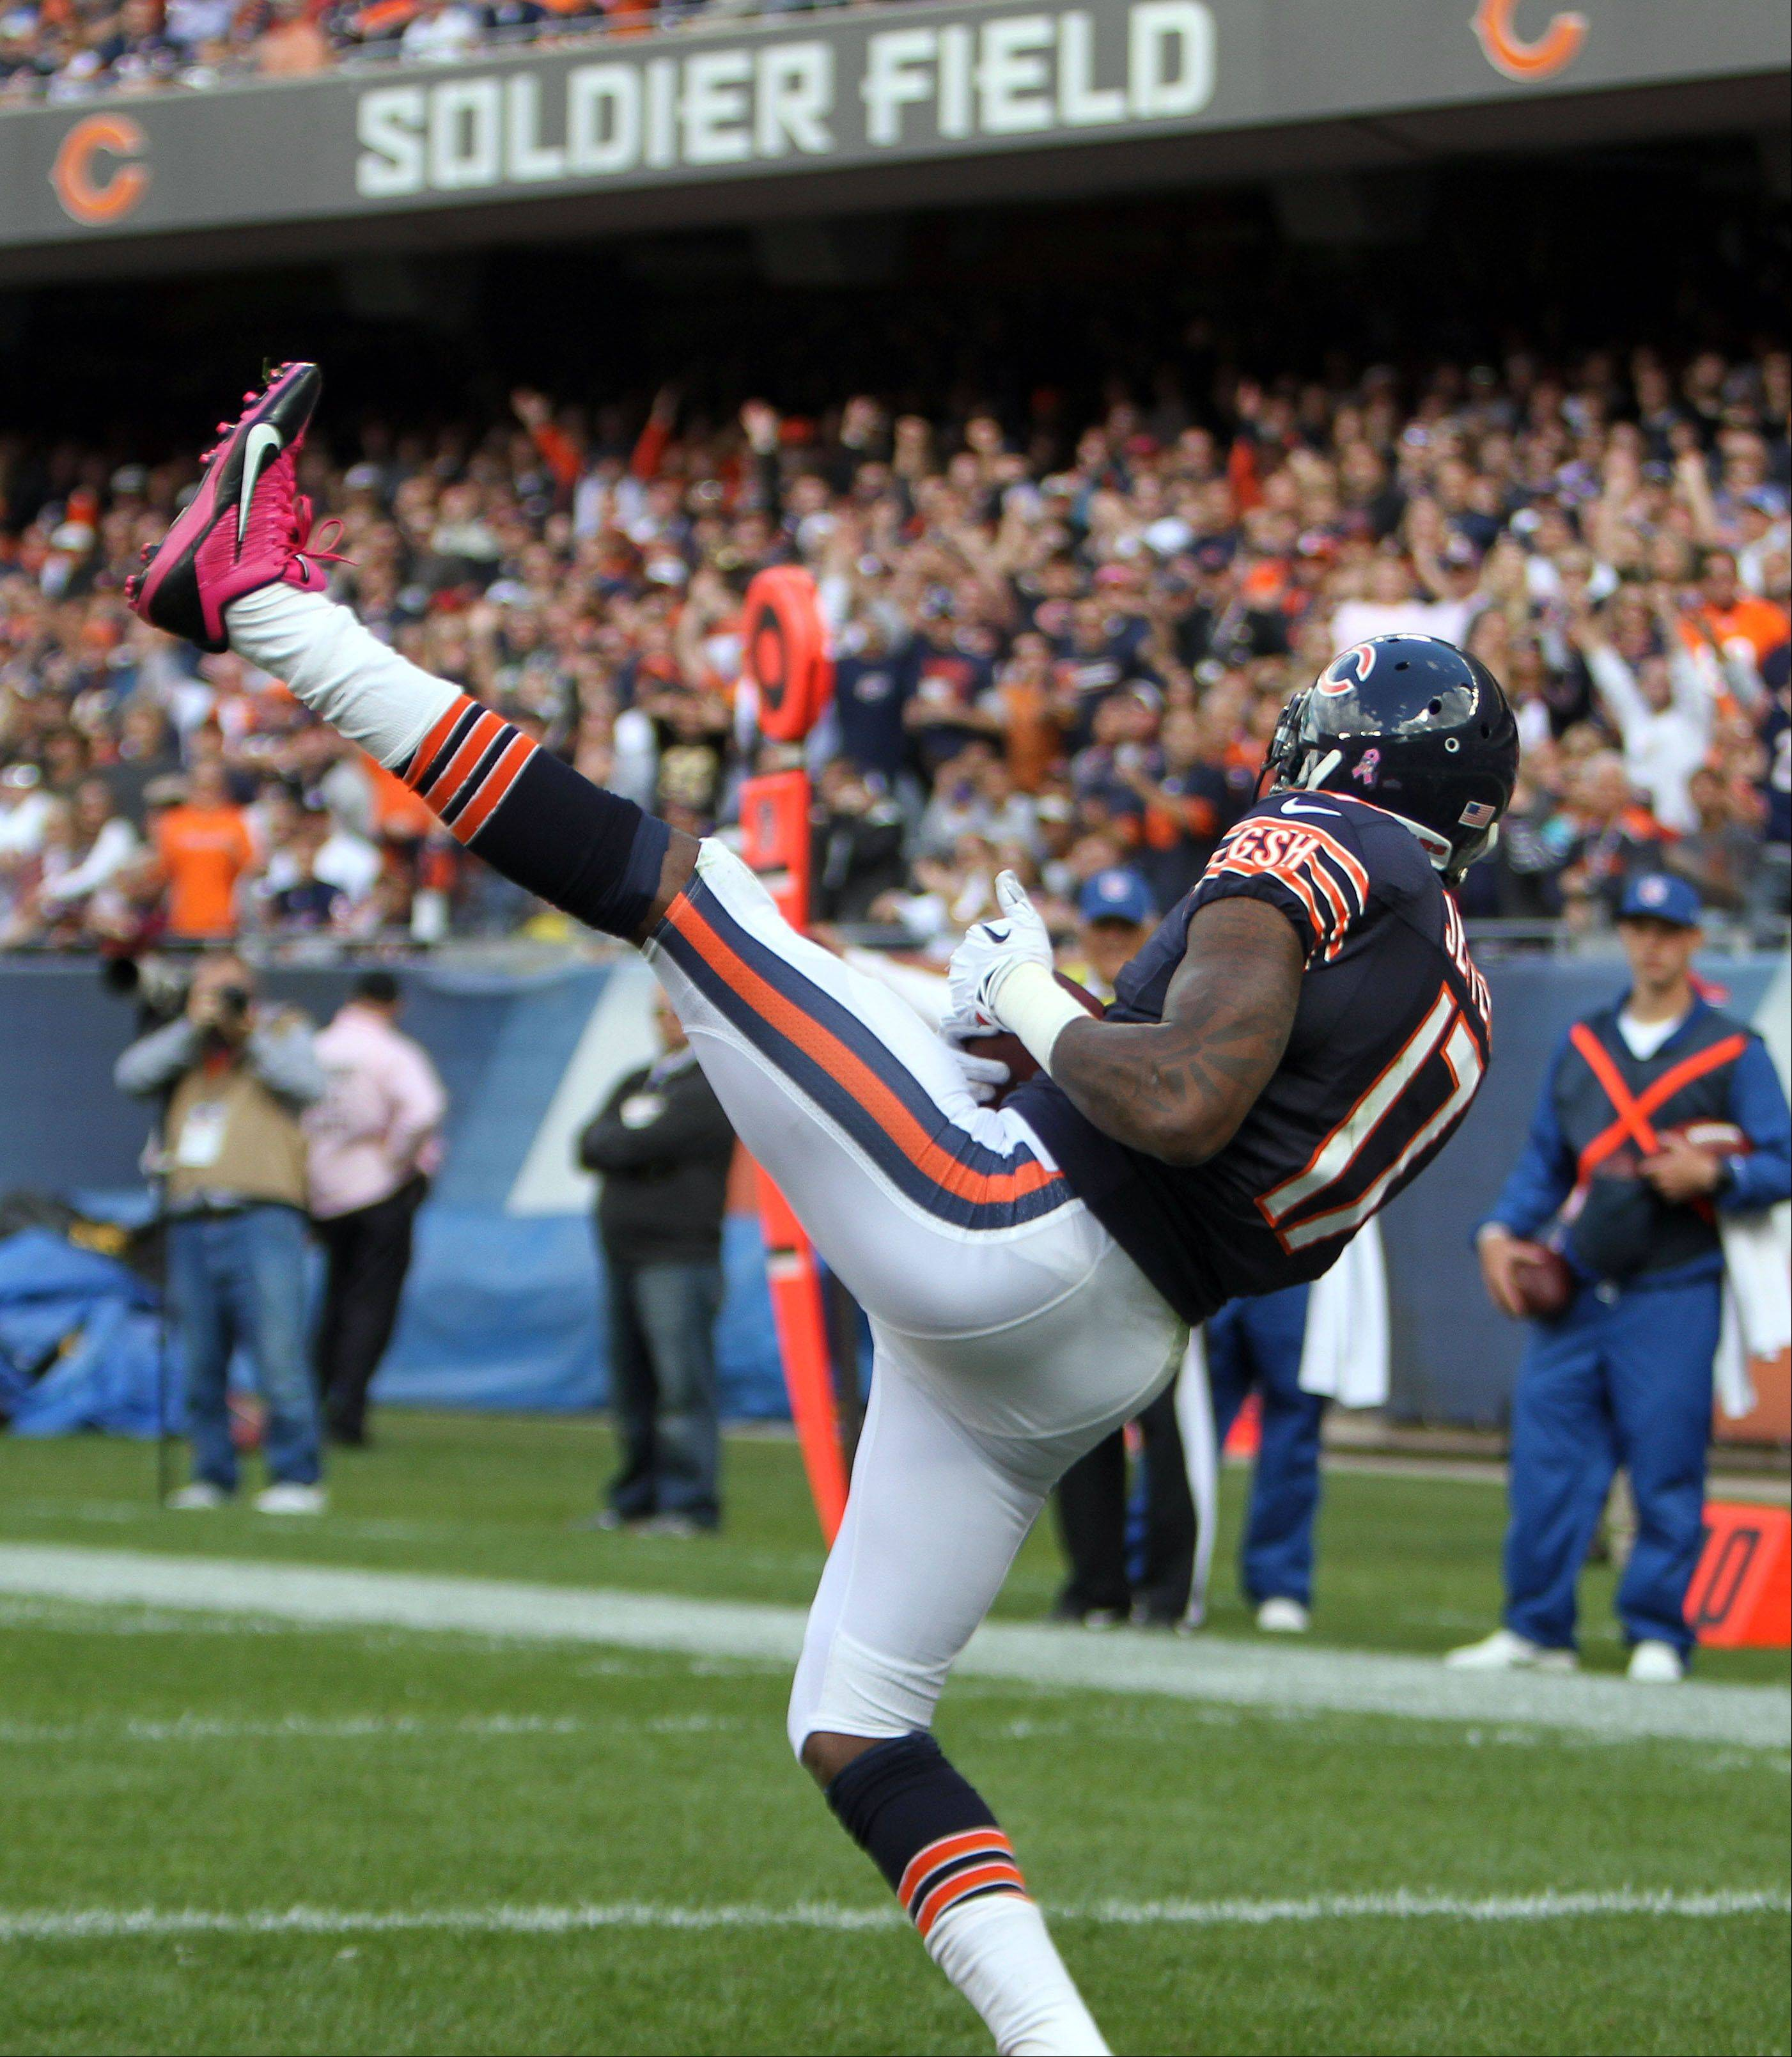 Chicago Bears wide receiver Alshon Jeffery catches a 3rd quarter touchdown during the Bears 26-18 loss to the New Orleans Saints Sunday at Soldier Field in Chicago.